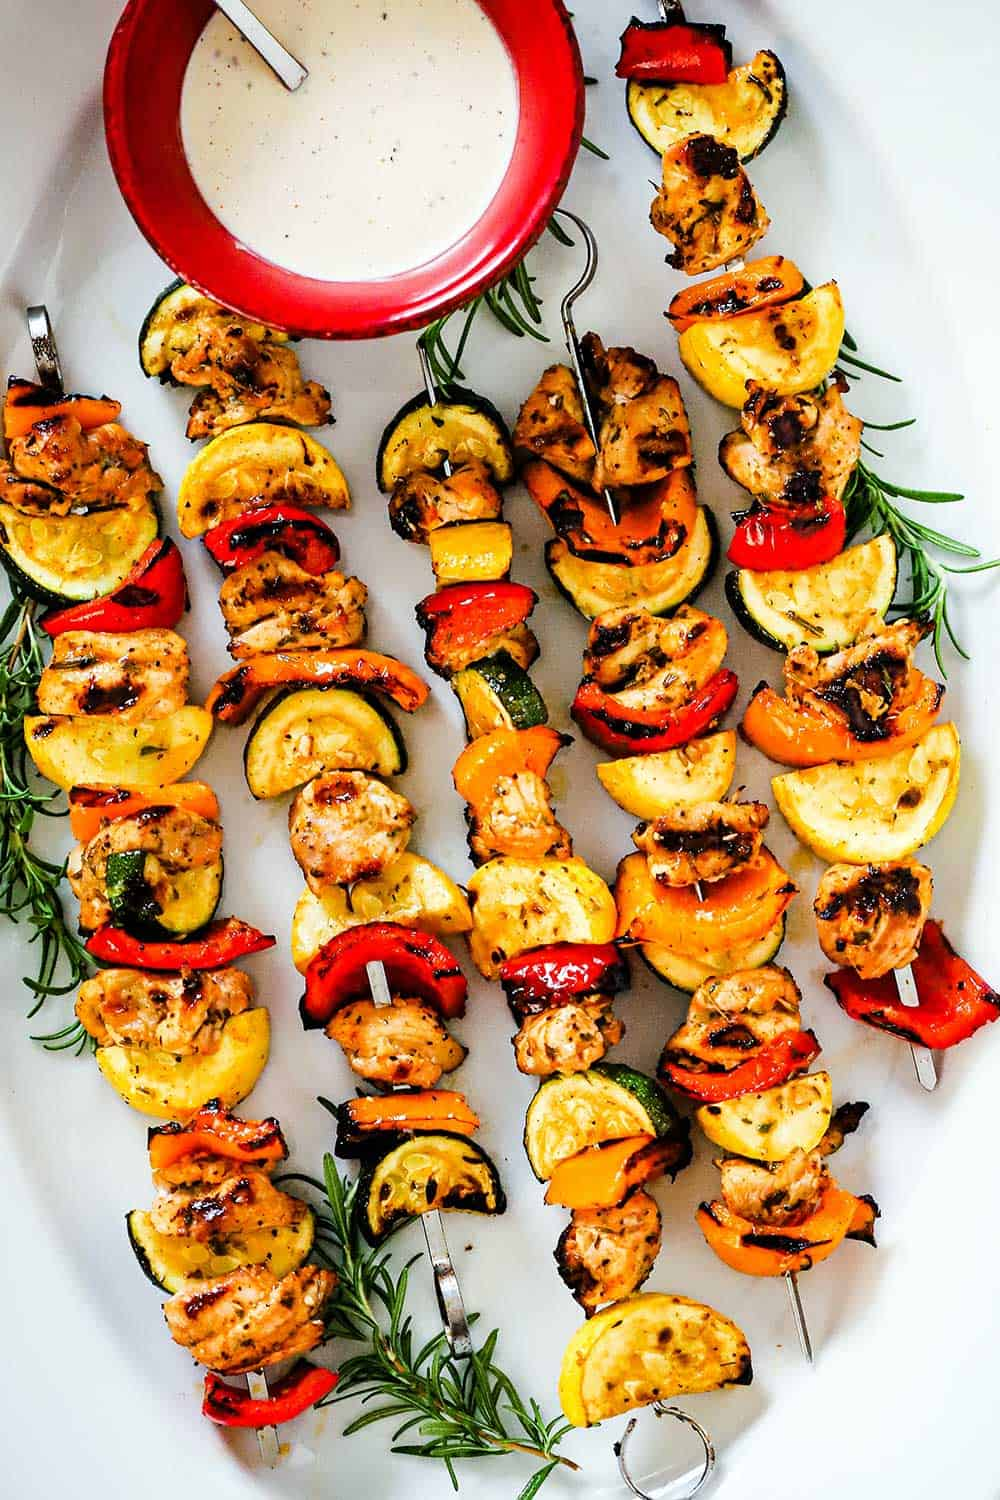 A large white oval platter filled with grilled chicken and vegetable kabobs with a red bowl filled with white BBQ sauce nestled in.